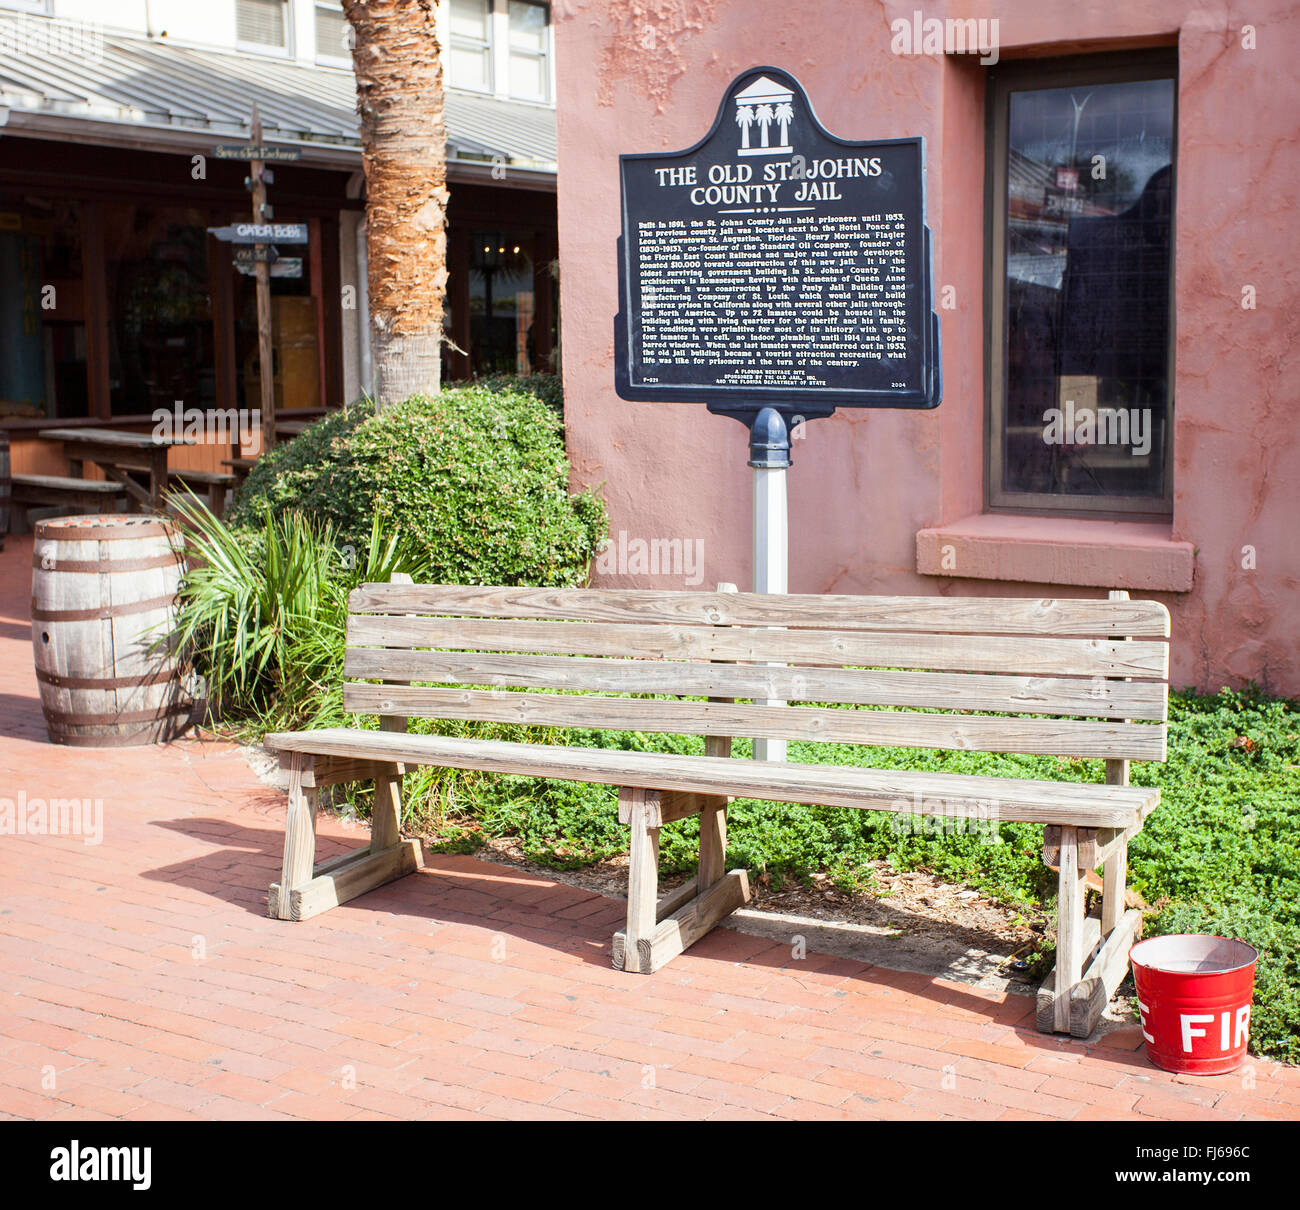 The Old St. Johns County Jail Sign (aka Authentic Old Jail) tells the history of the Old Jail in St. Augustine, - Stock Image